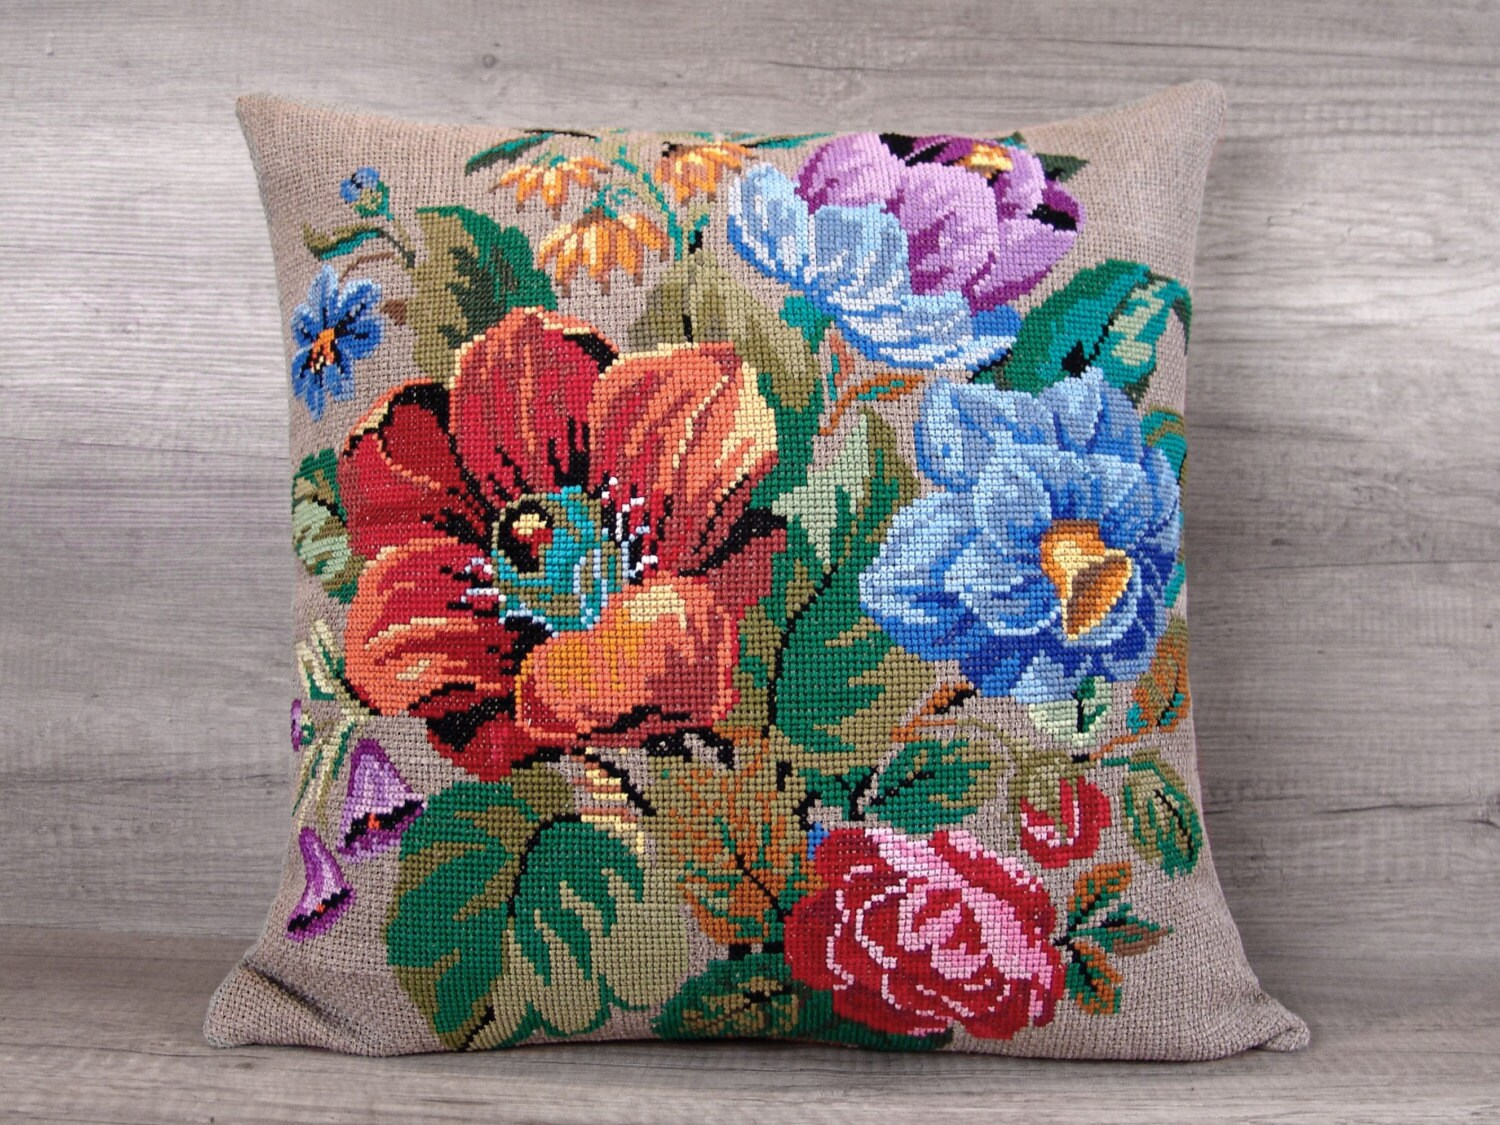 Large Flower Throw Pillow : Large flower cross stitch decorative pillow cover embroidered